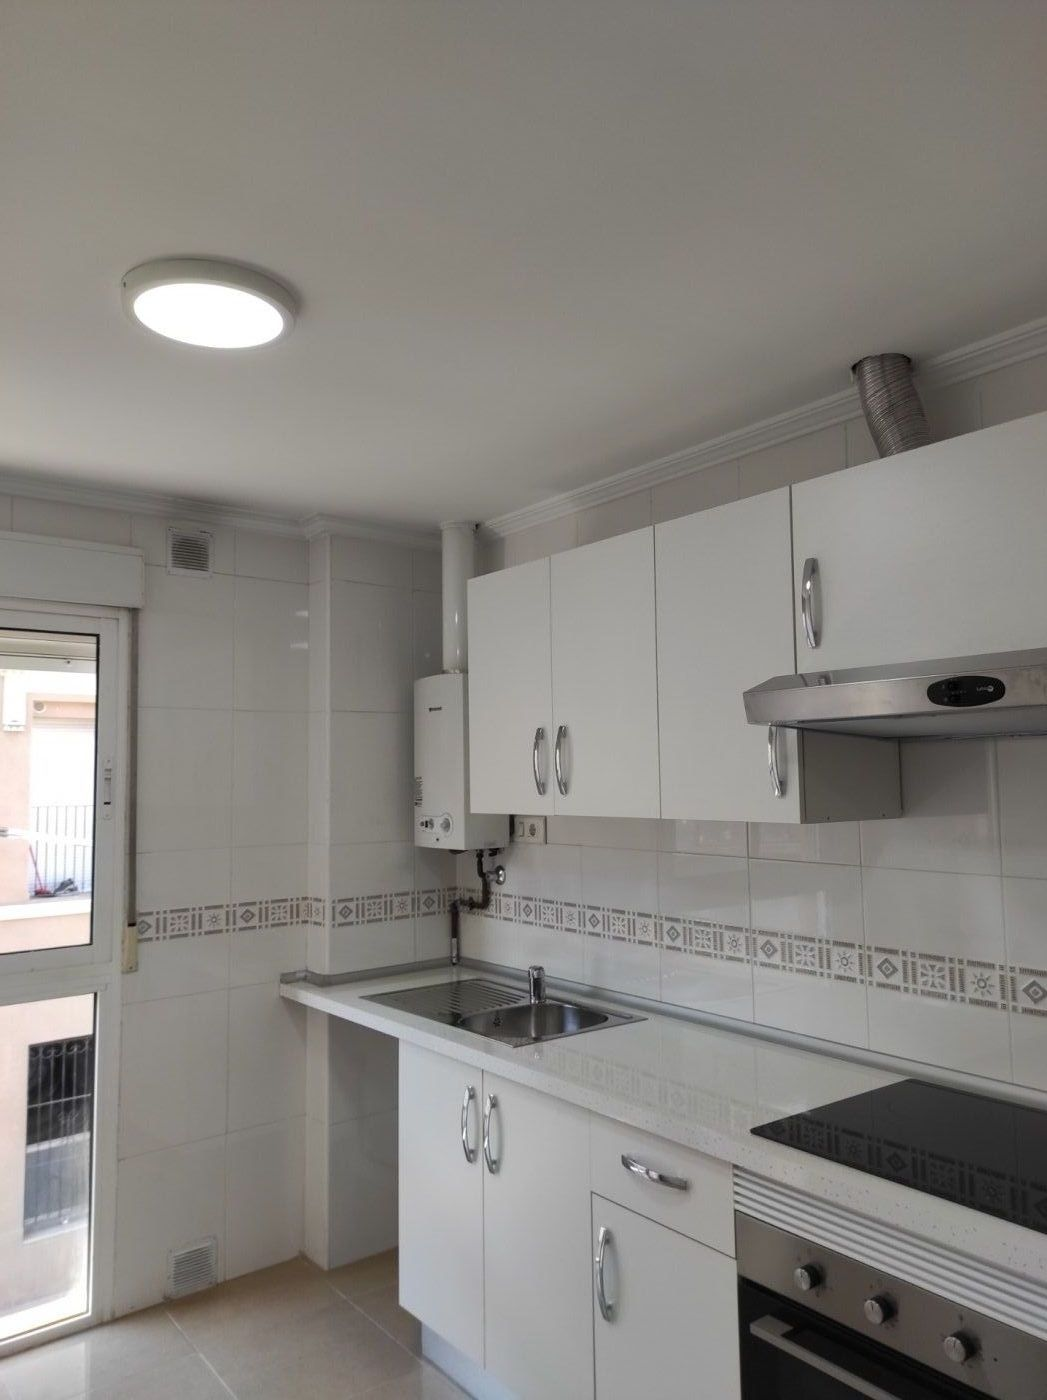 Image 5 Flat ref 2680 for rent in El Palmar Spain - Quality Homes Costa Cálida